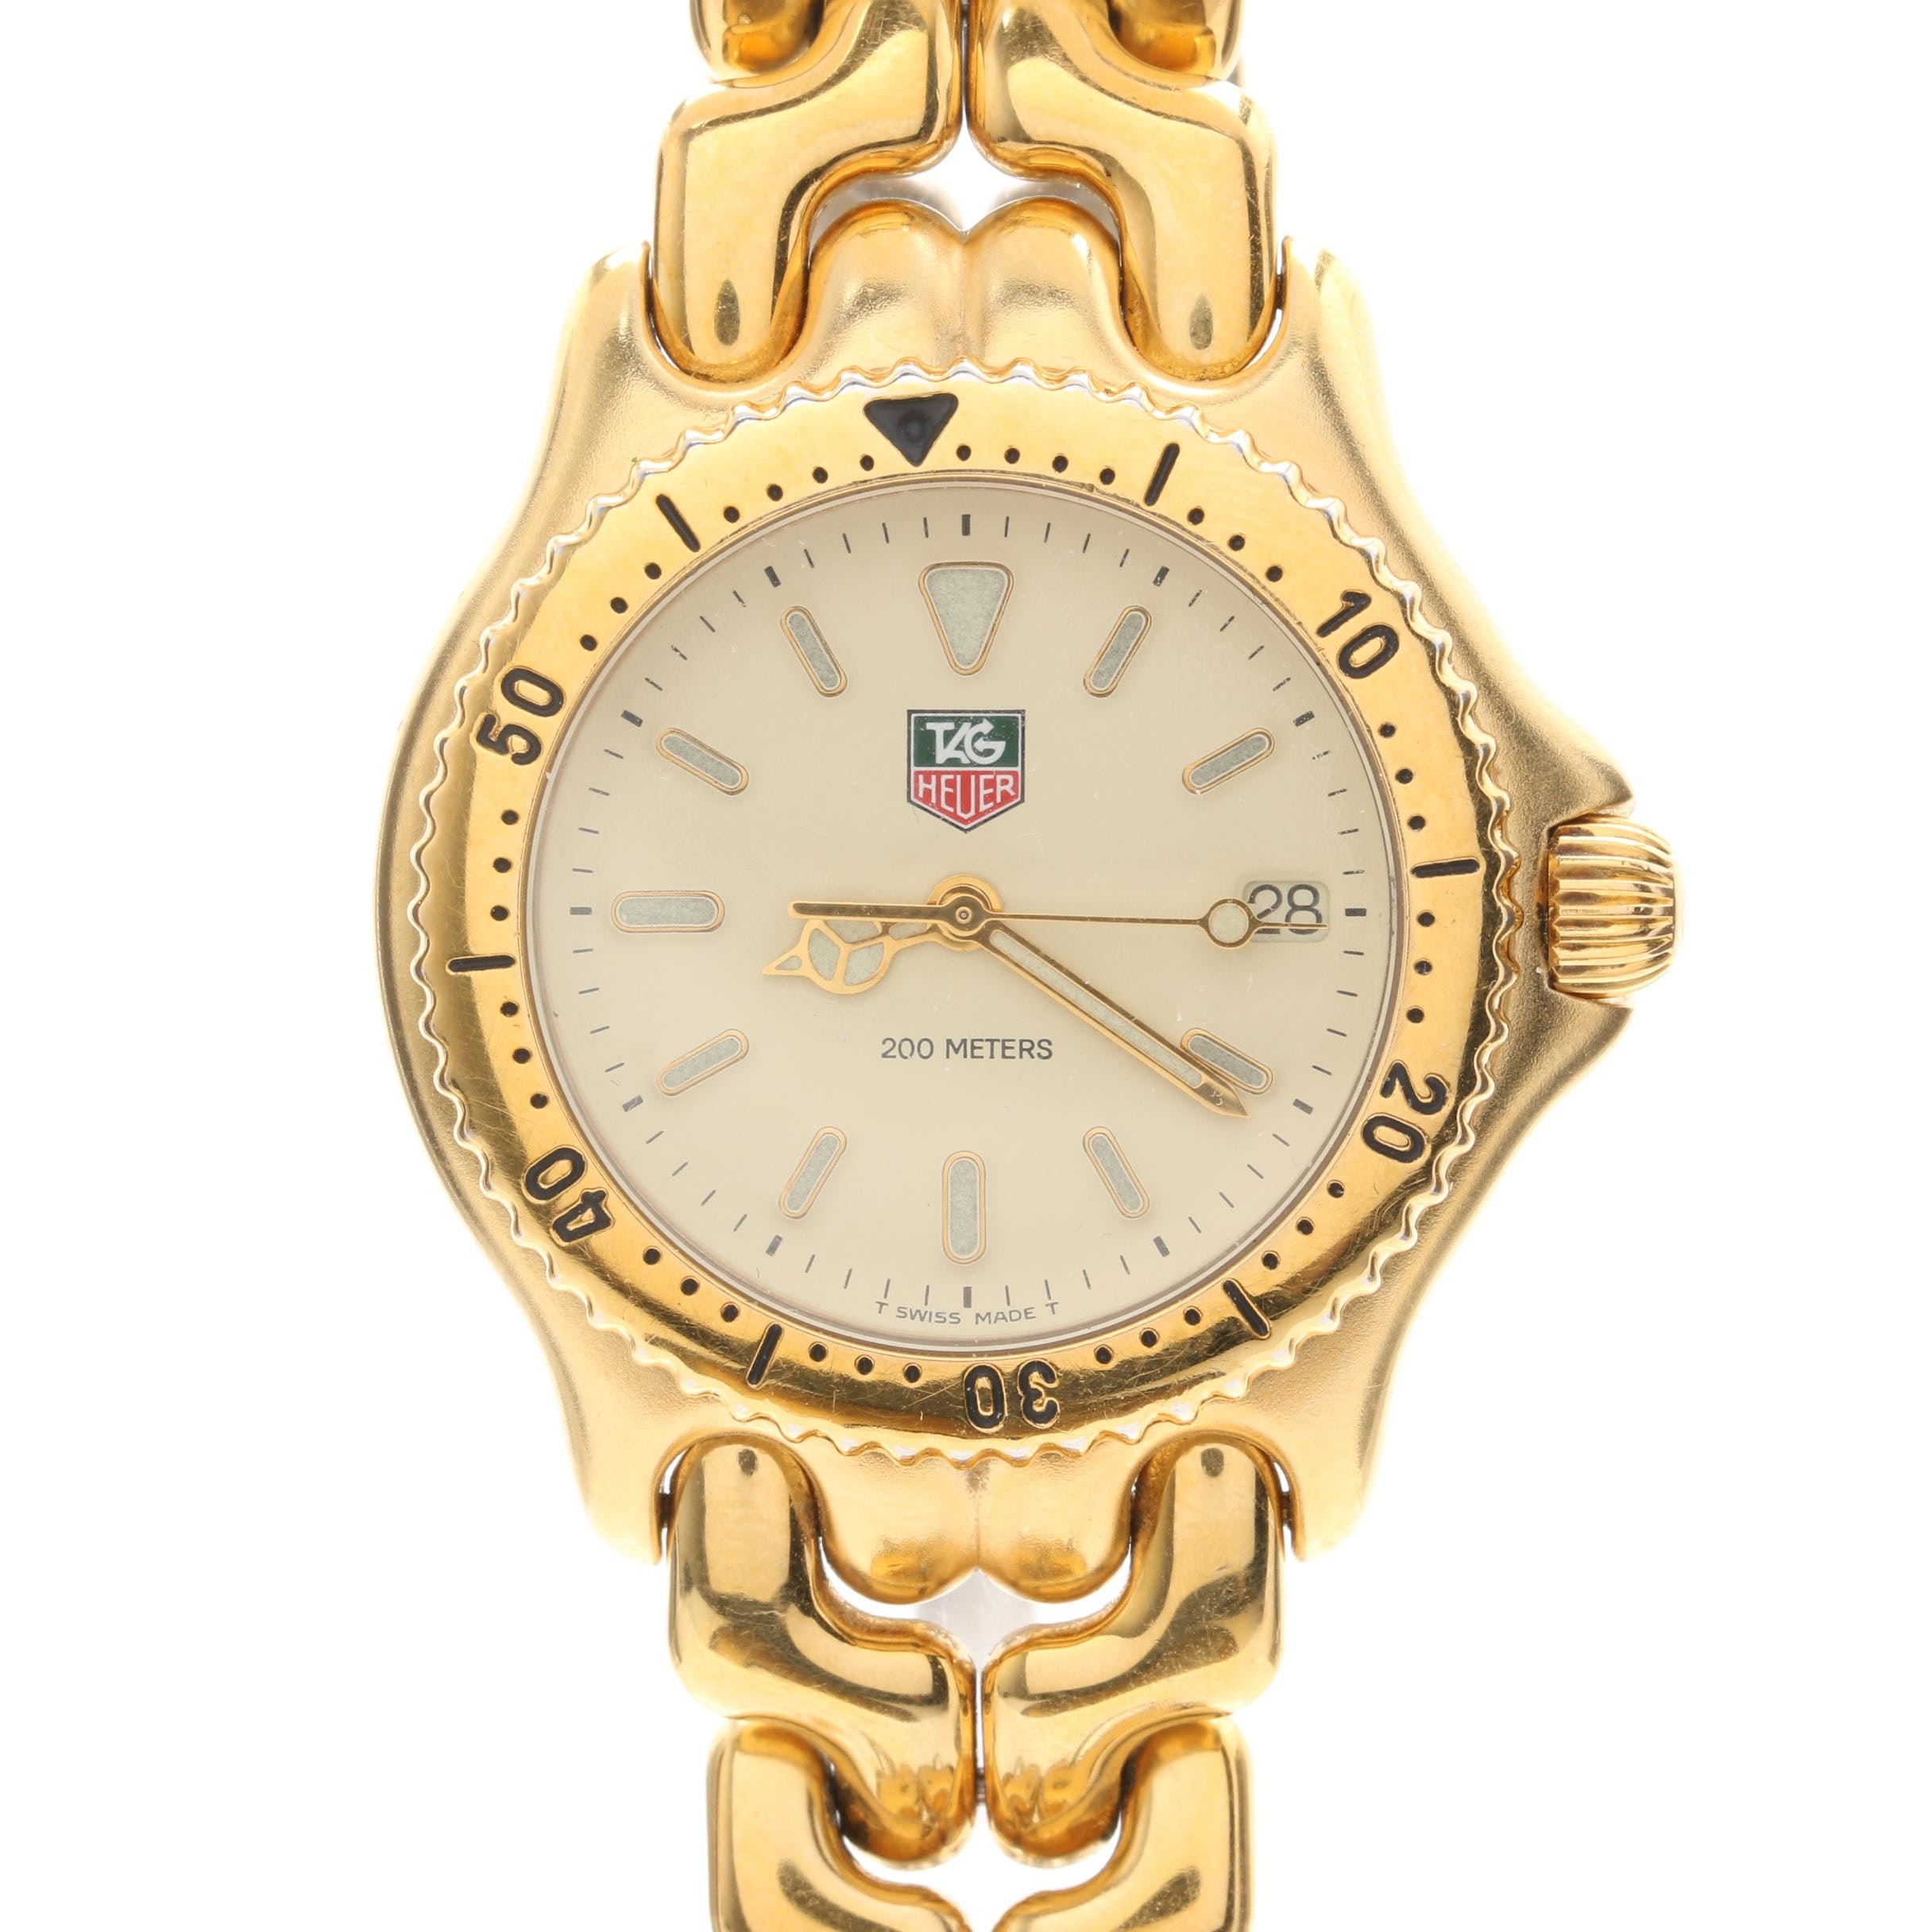 TAG Heuer Gold-tone Stainless Steel Wristwatch with Date Window